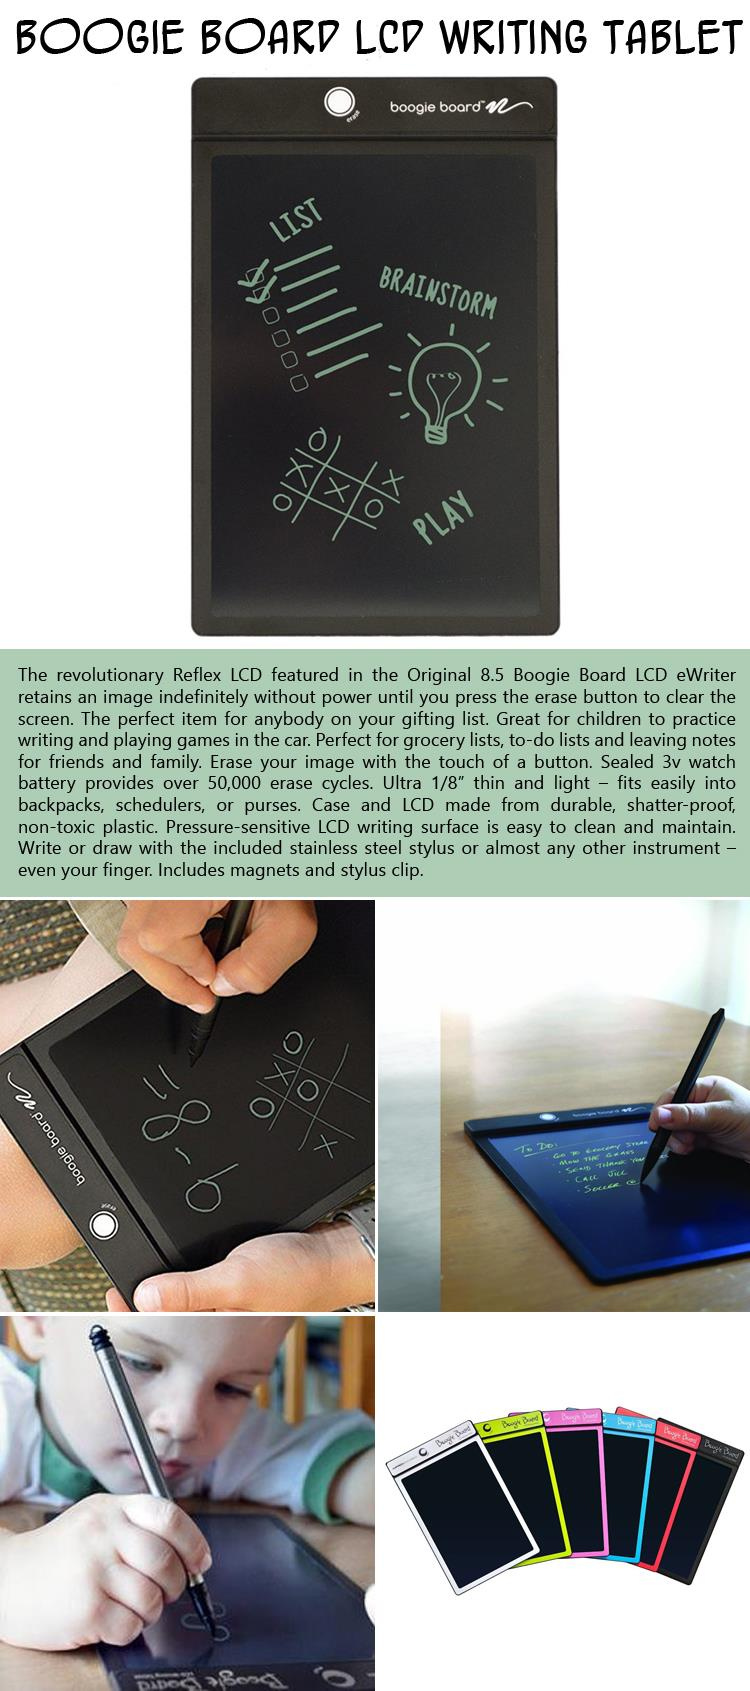 boogie-board-lcd-writing-tablet